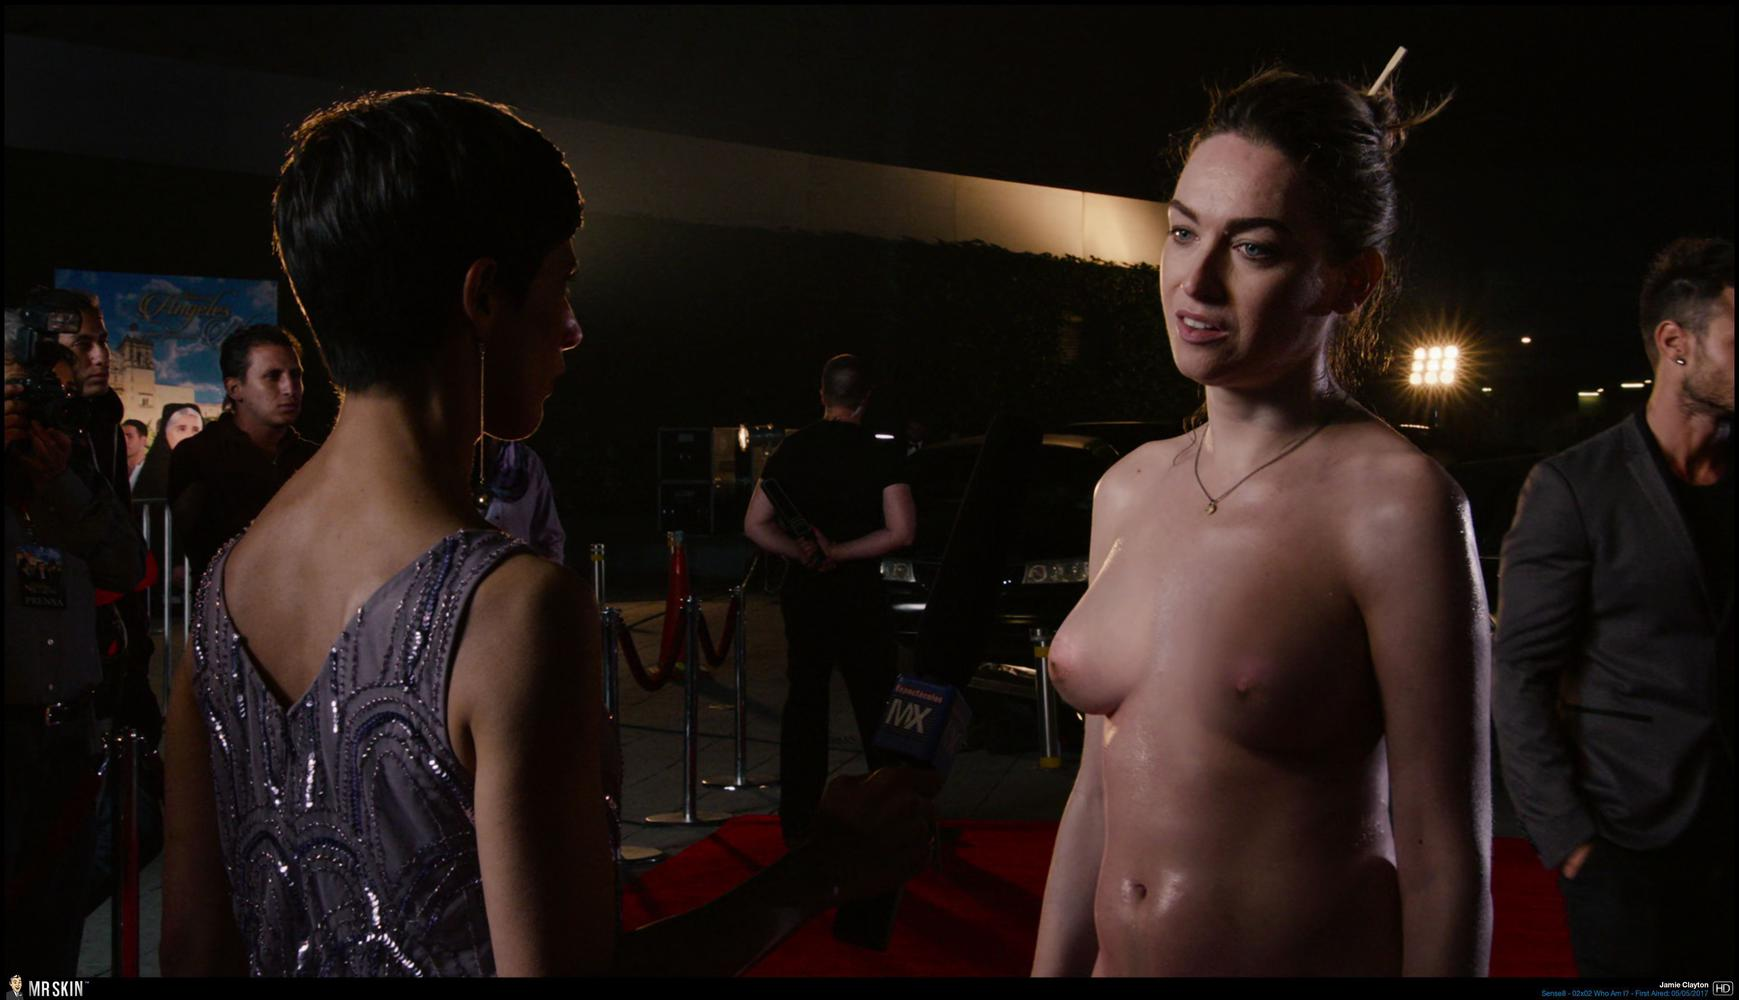 Opinion boys don t cry movie nude scenes were mistaken